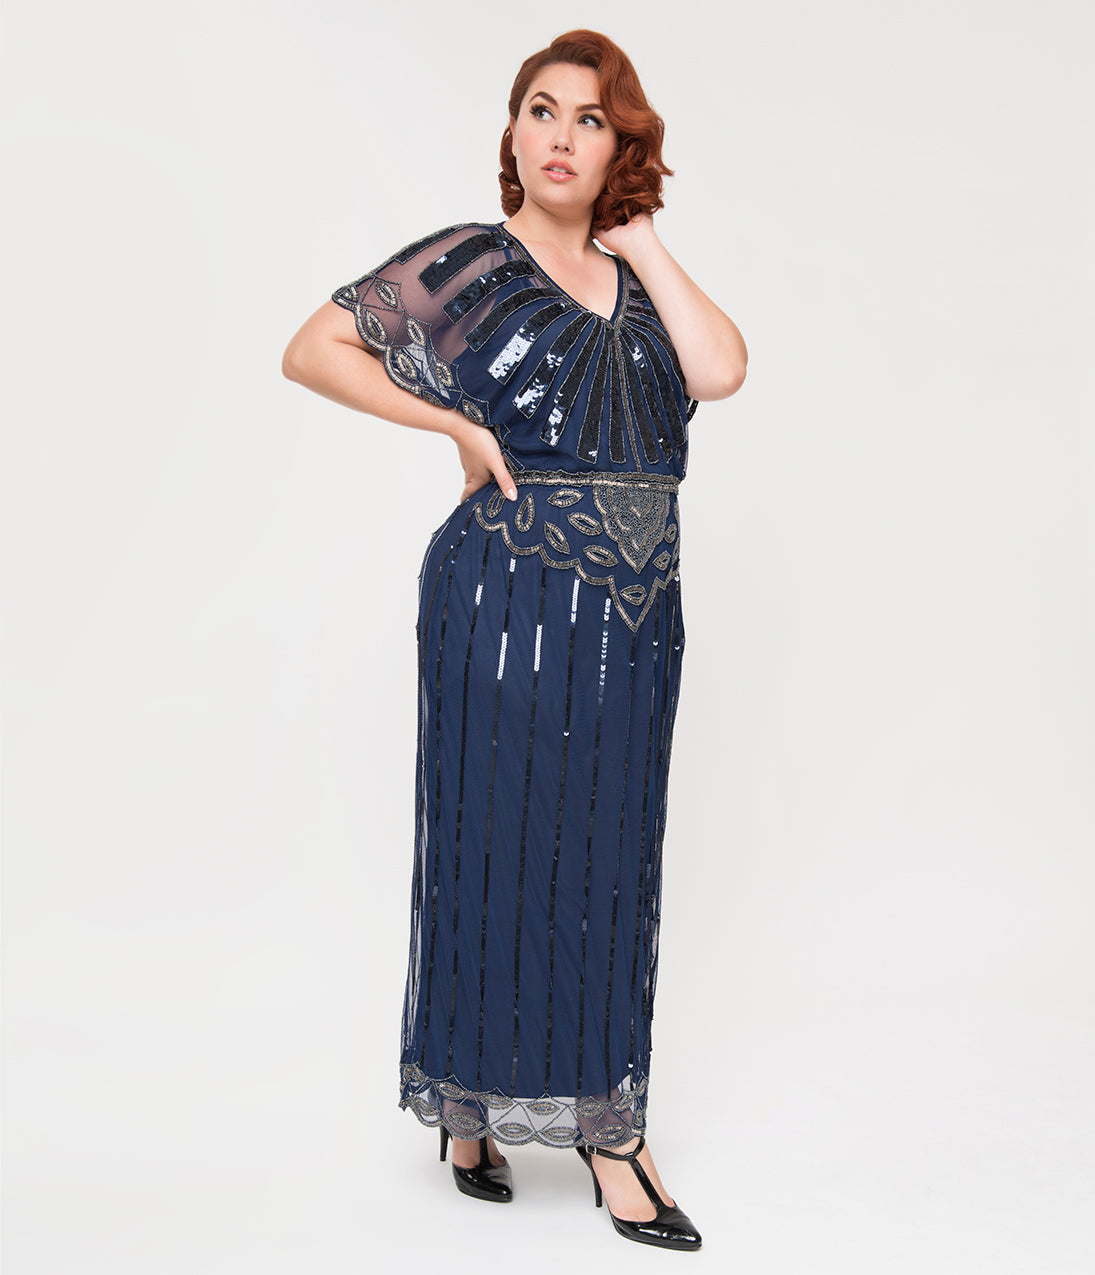 1930s Art Deco Plus Size Dresses | Tea Dresses, Party Dresses Plus Size 1920S Navy Blue Beaded Deco Angelina Maxi Flapper Dress $168.00 AT vintagedancer.com